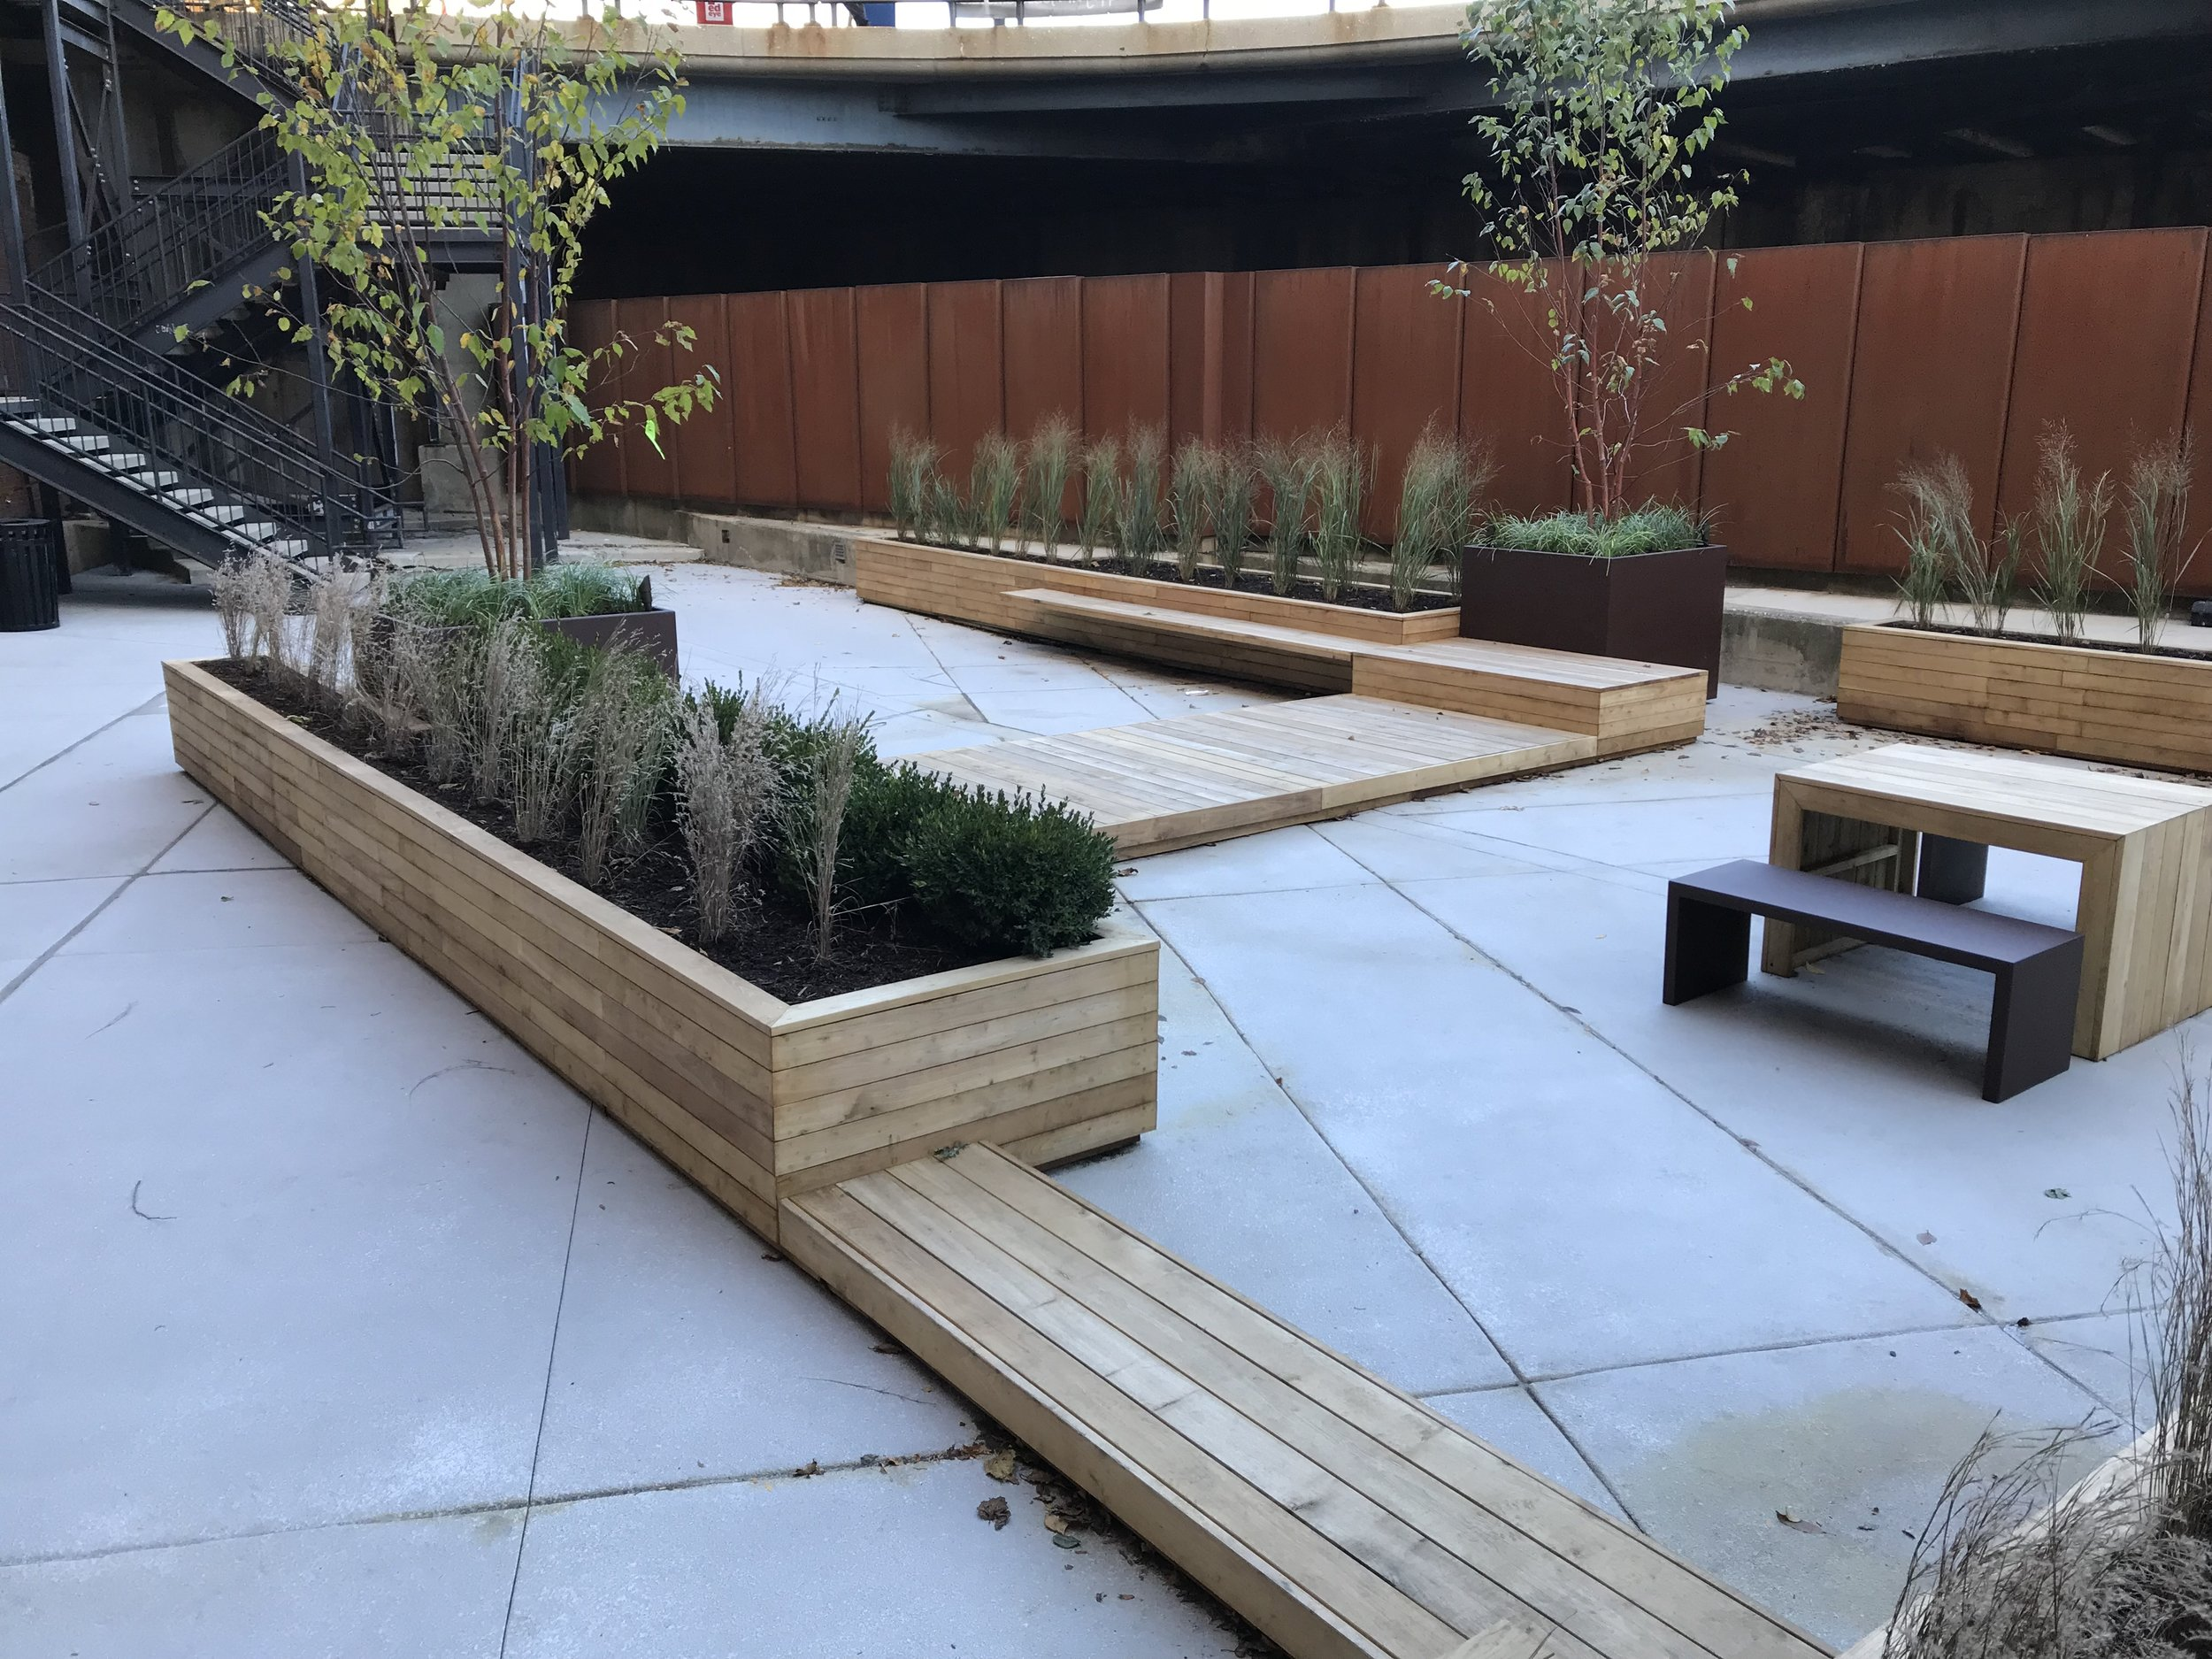 Commercial Courtyard - Long planters, deck panels, benches and tables made from sustainable black locust wood. The wood is Select & Better grade, kiln dried and left unfinished to weather grey.